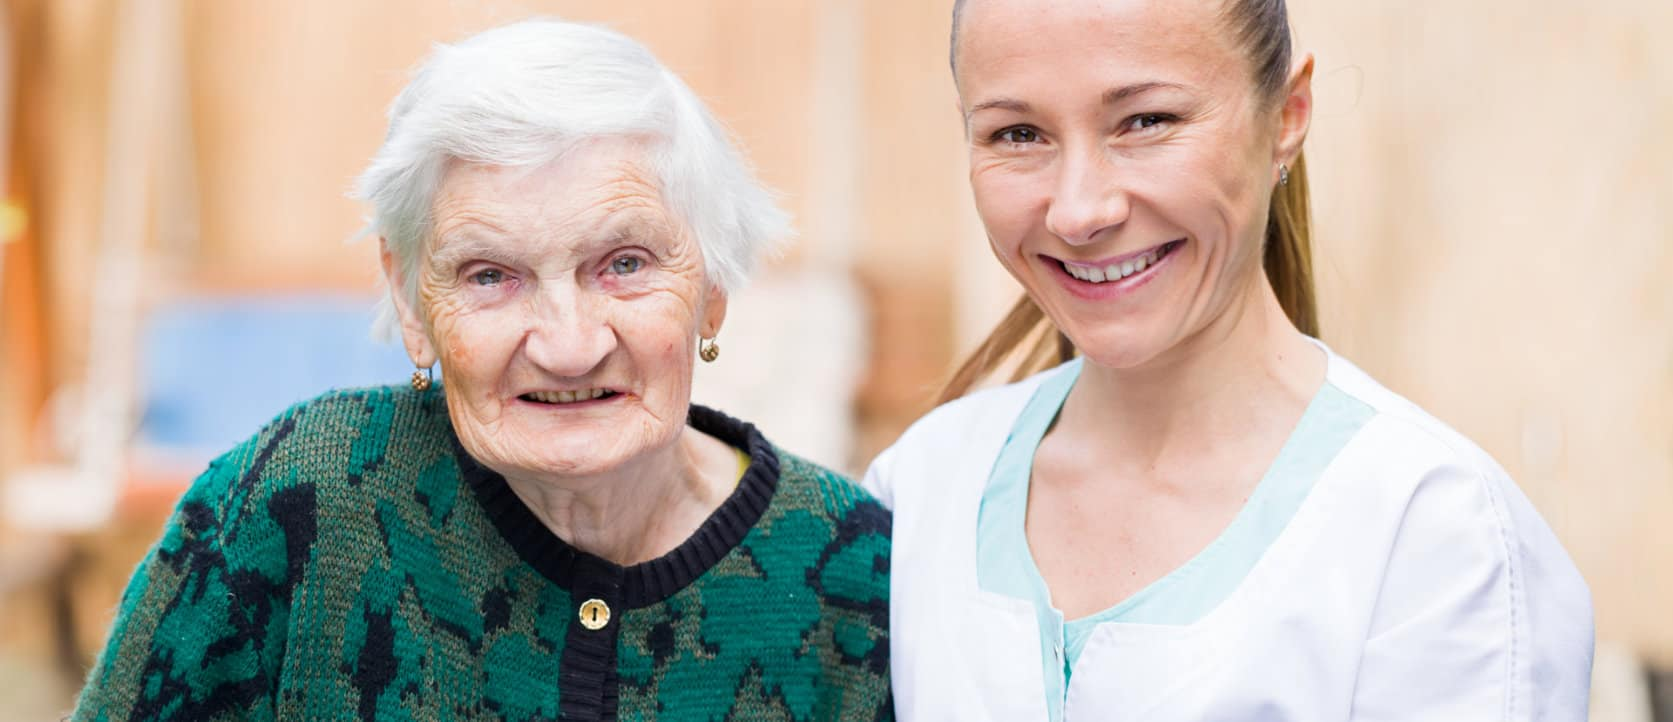 staff and elder woman smiling